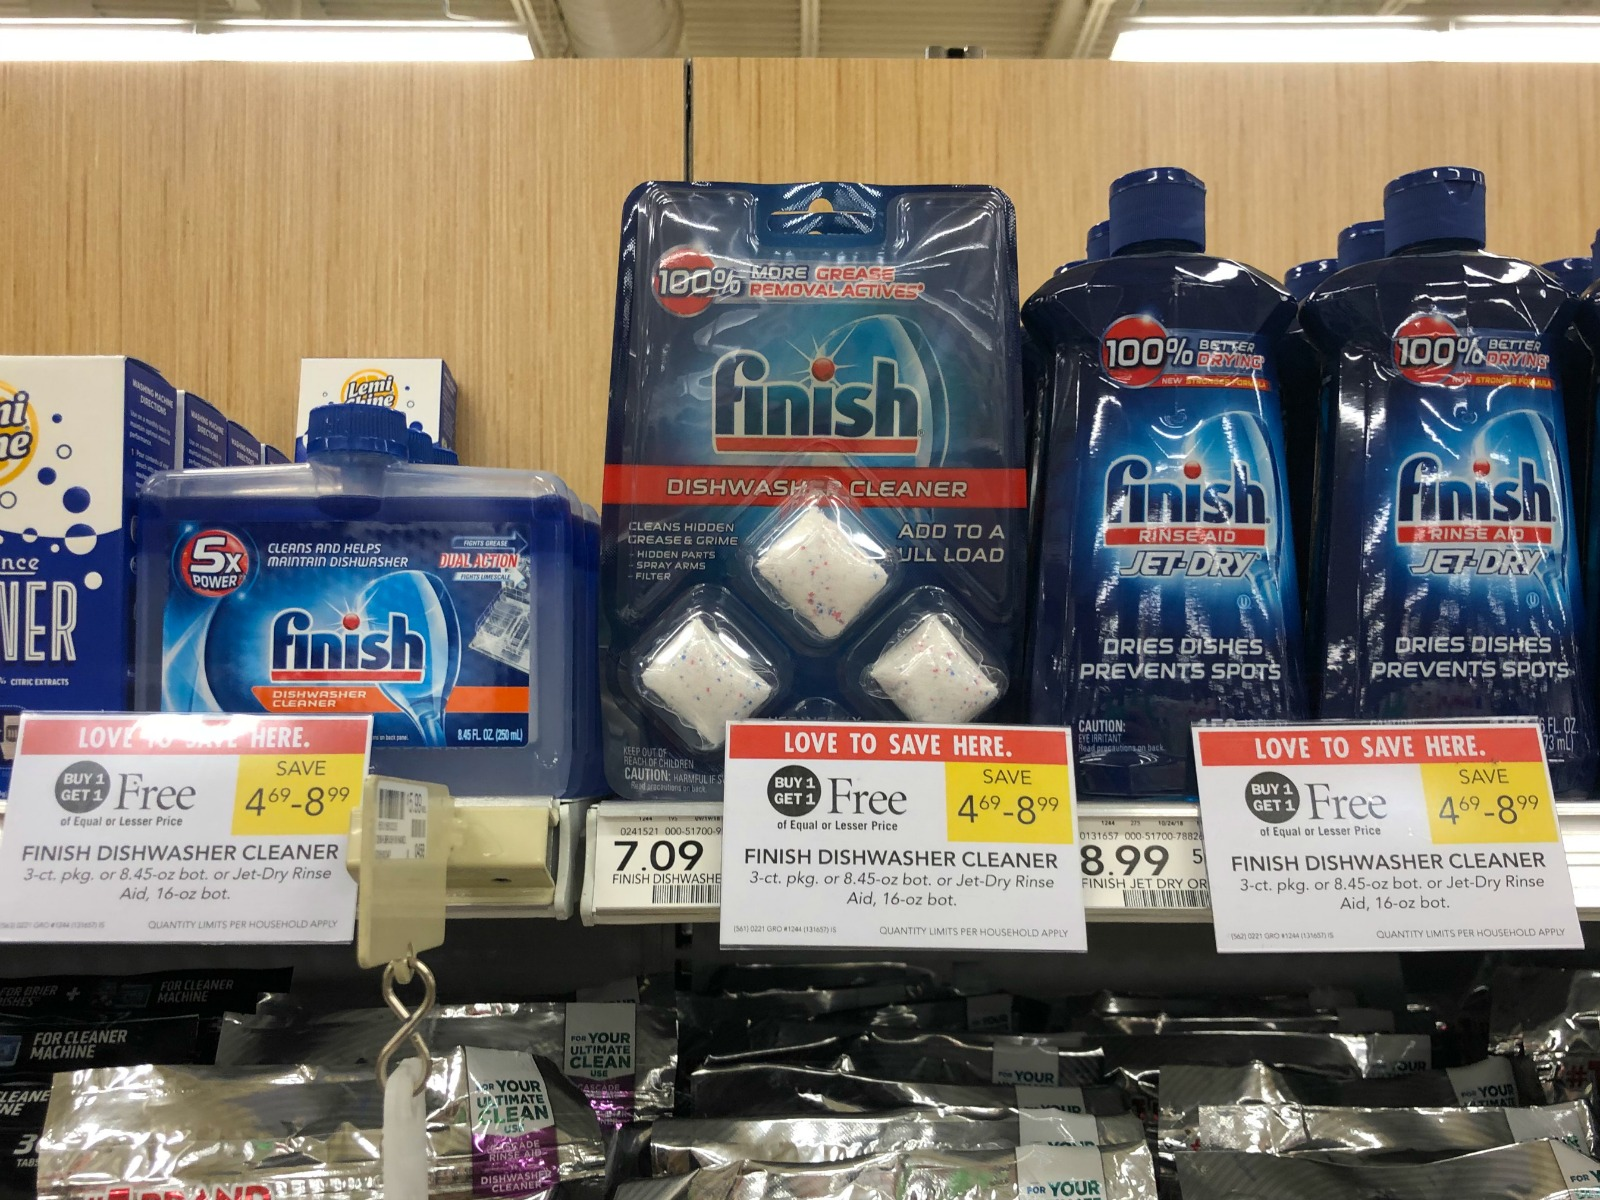 Finish Automatic Dishwasher Detergent Only $2.55 At Publix on I Heart Publix